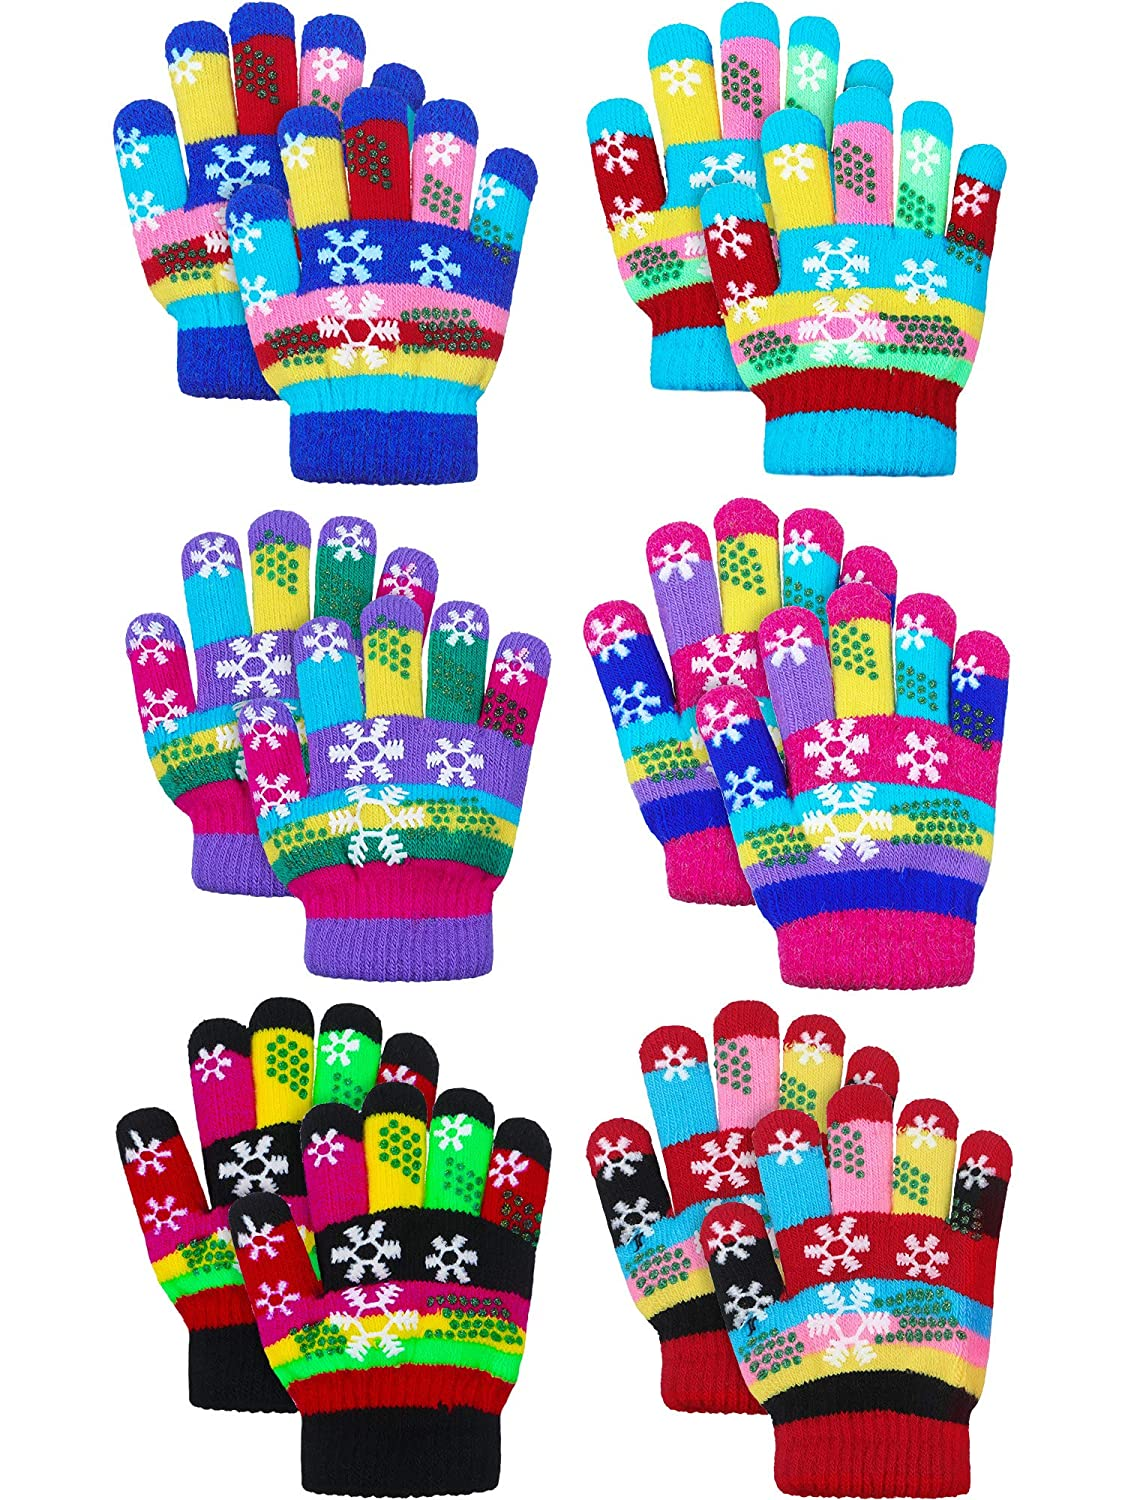 6 Pairs Toddler Magic Stretch Mittens Winter Unisex Baby Knitted Gloves Mittens